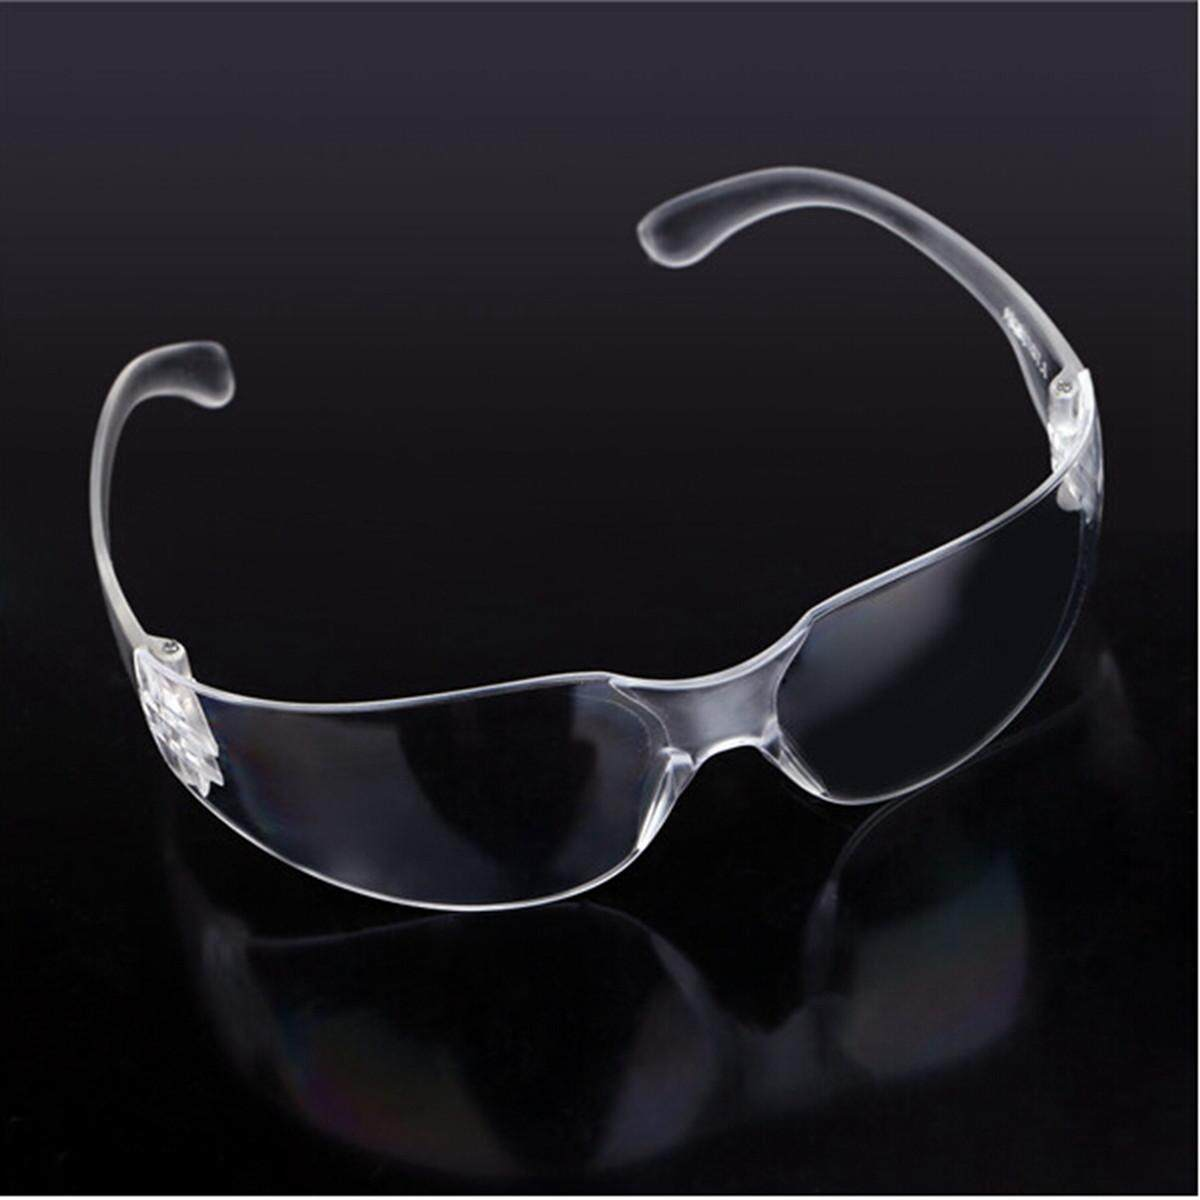 2pcs Lucency Safety Eye Protection Goggles Glasses for Workplace Lab Industrial Dust